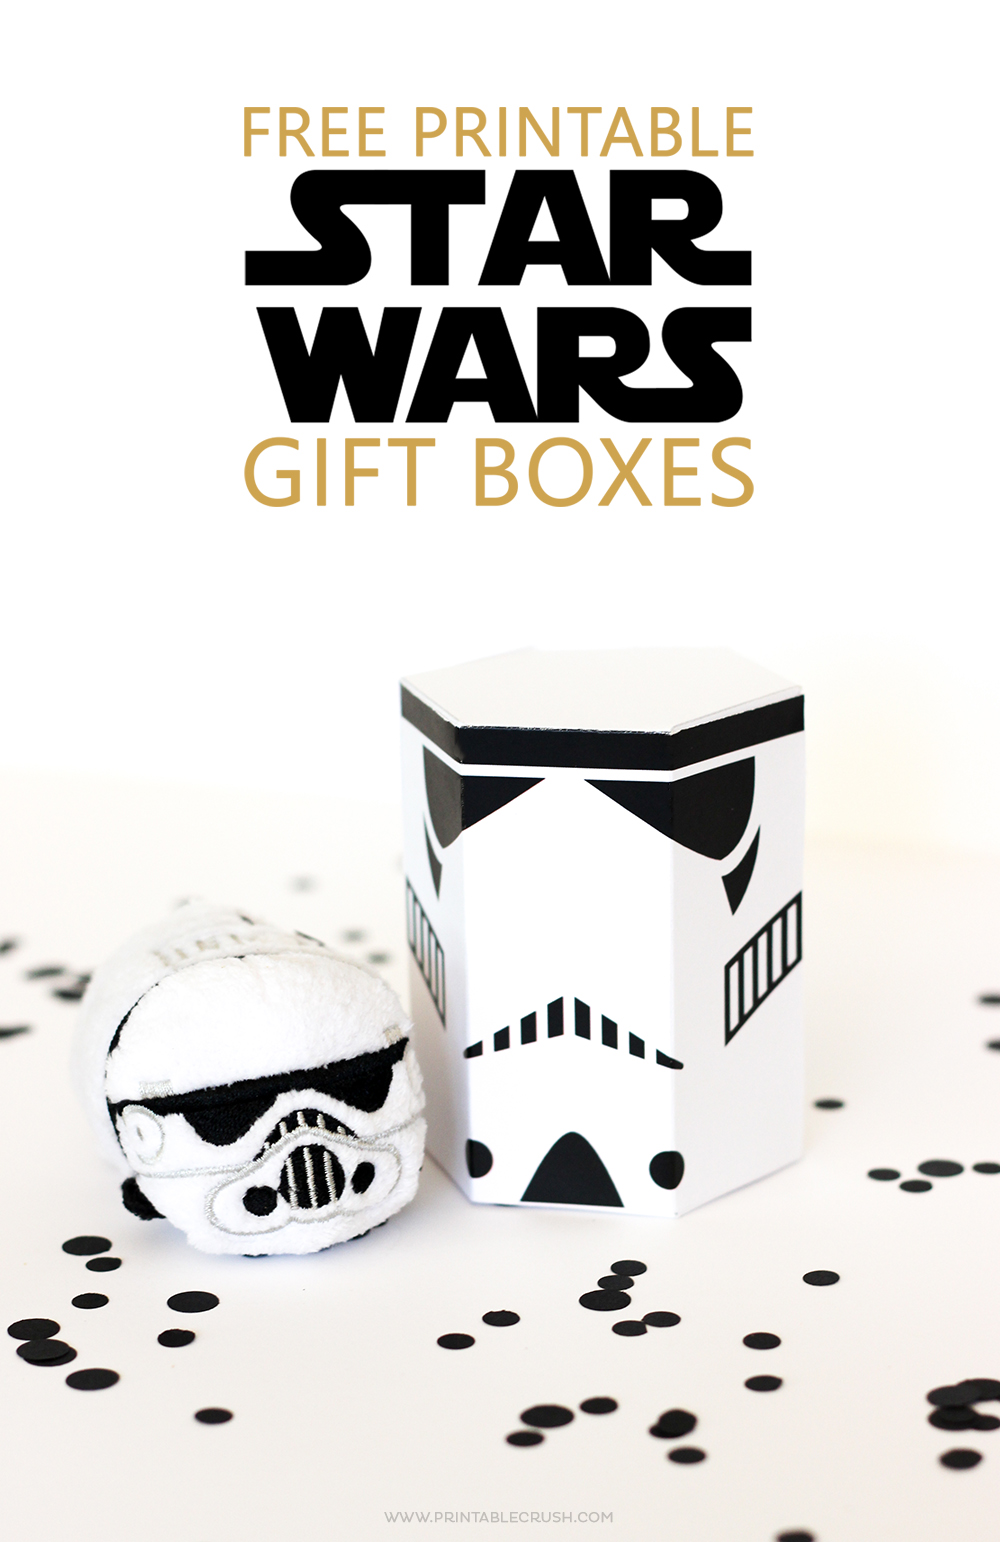 photograph relating to Printable Star Wars Images known as Absolutely free Star Wars Printable Present Containers - Printable Crush